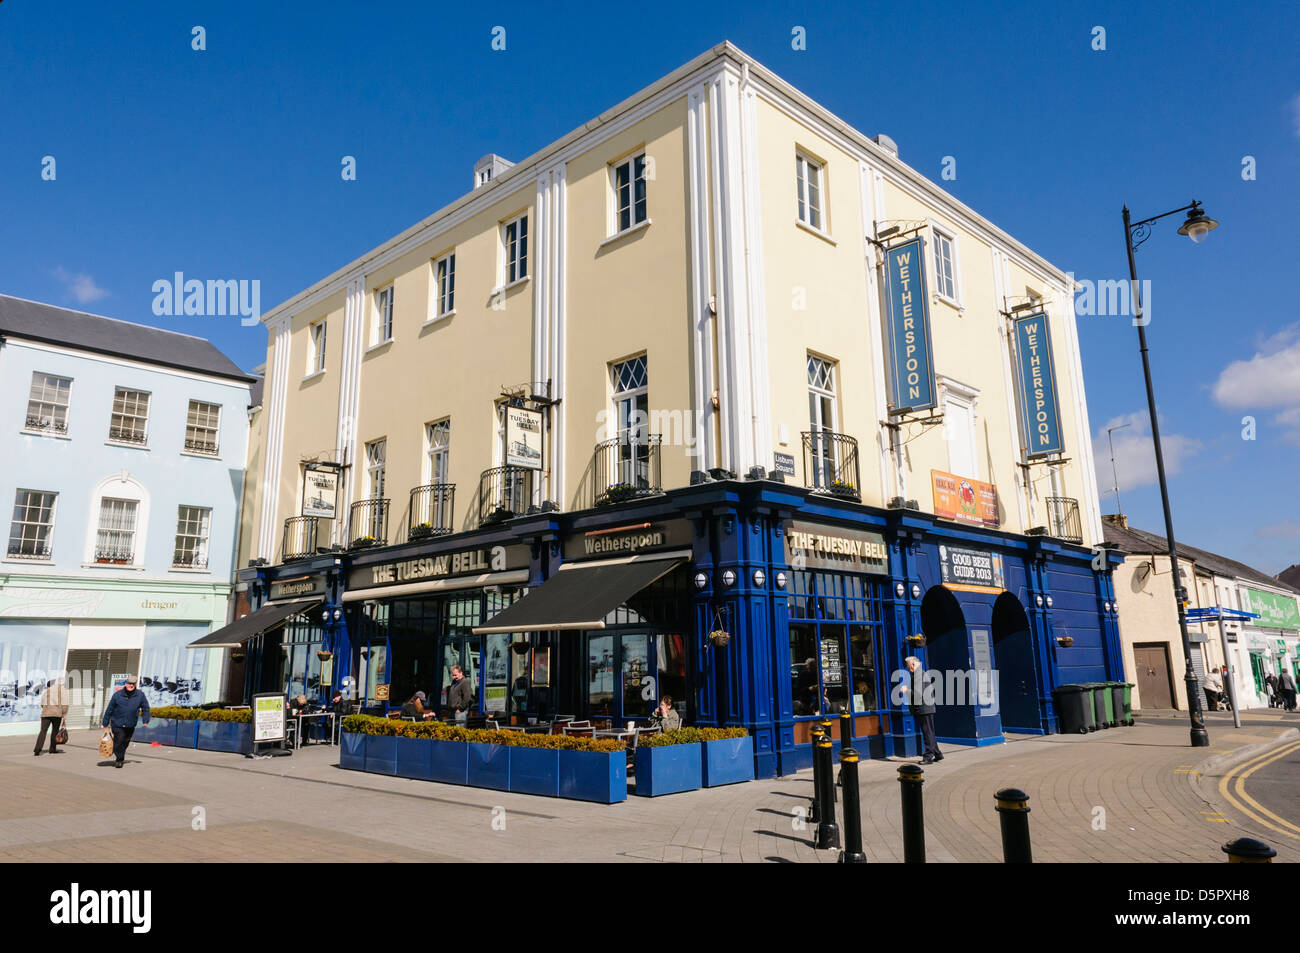 The Tuesday Bell Wetherspoons pub, Lisburn - Stock Image